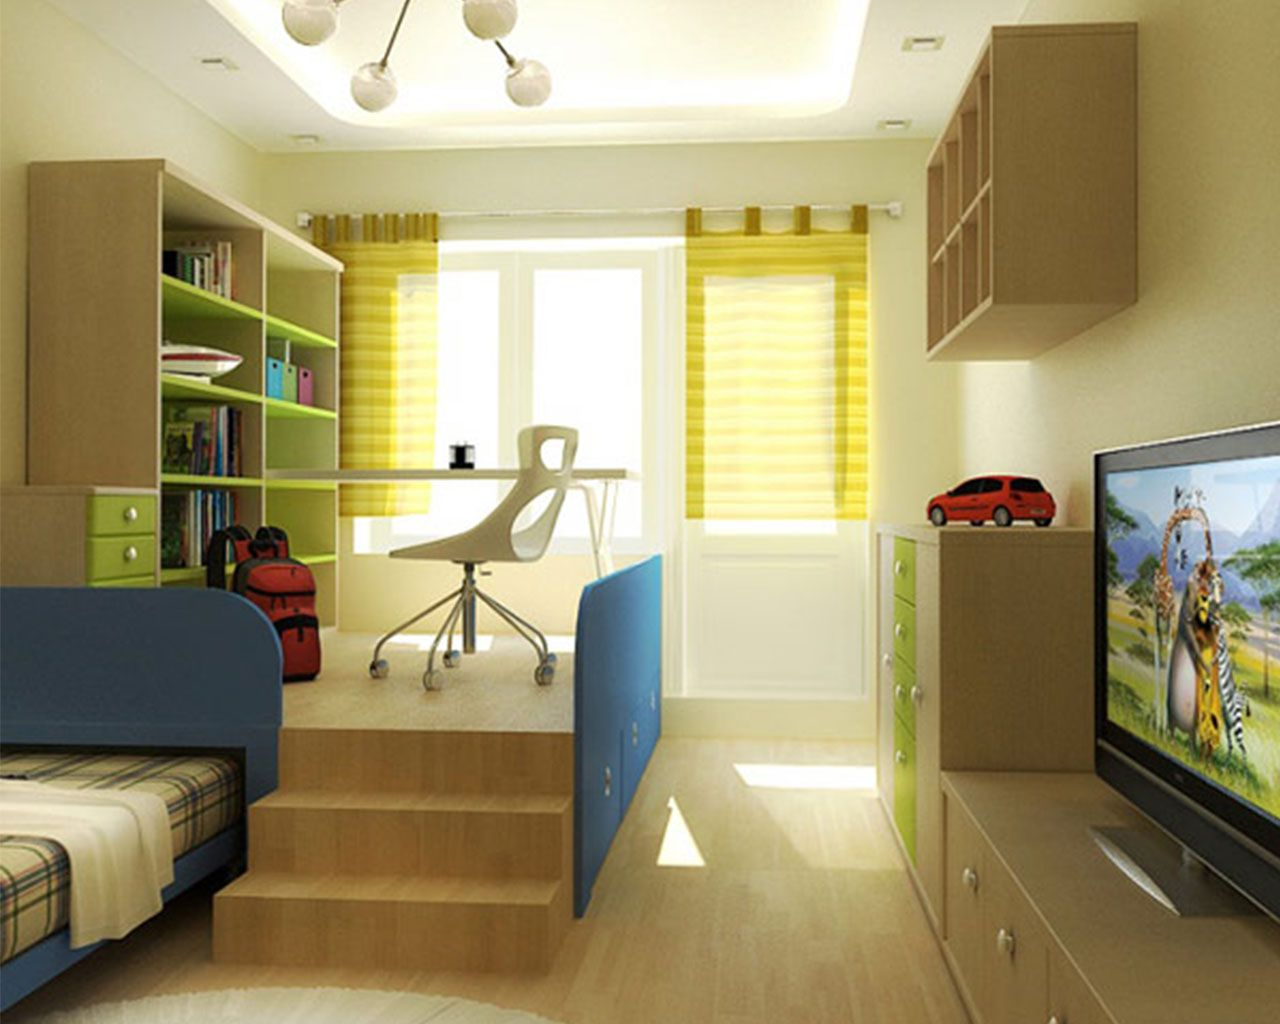 Bedroom : Awesome Teenage Bedroom Design Ideas For Boys